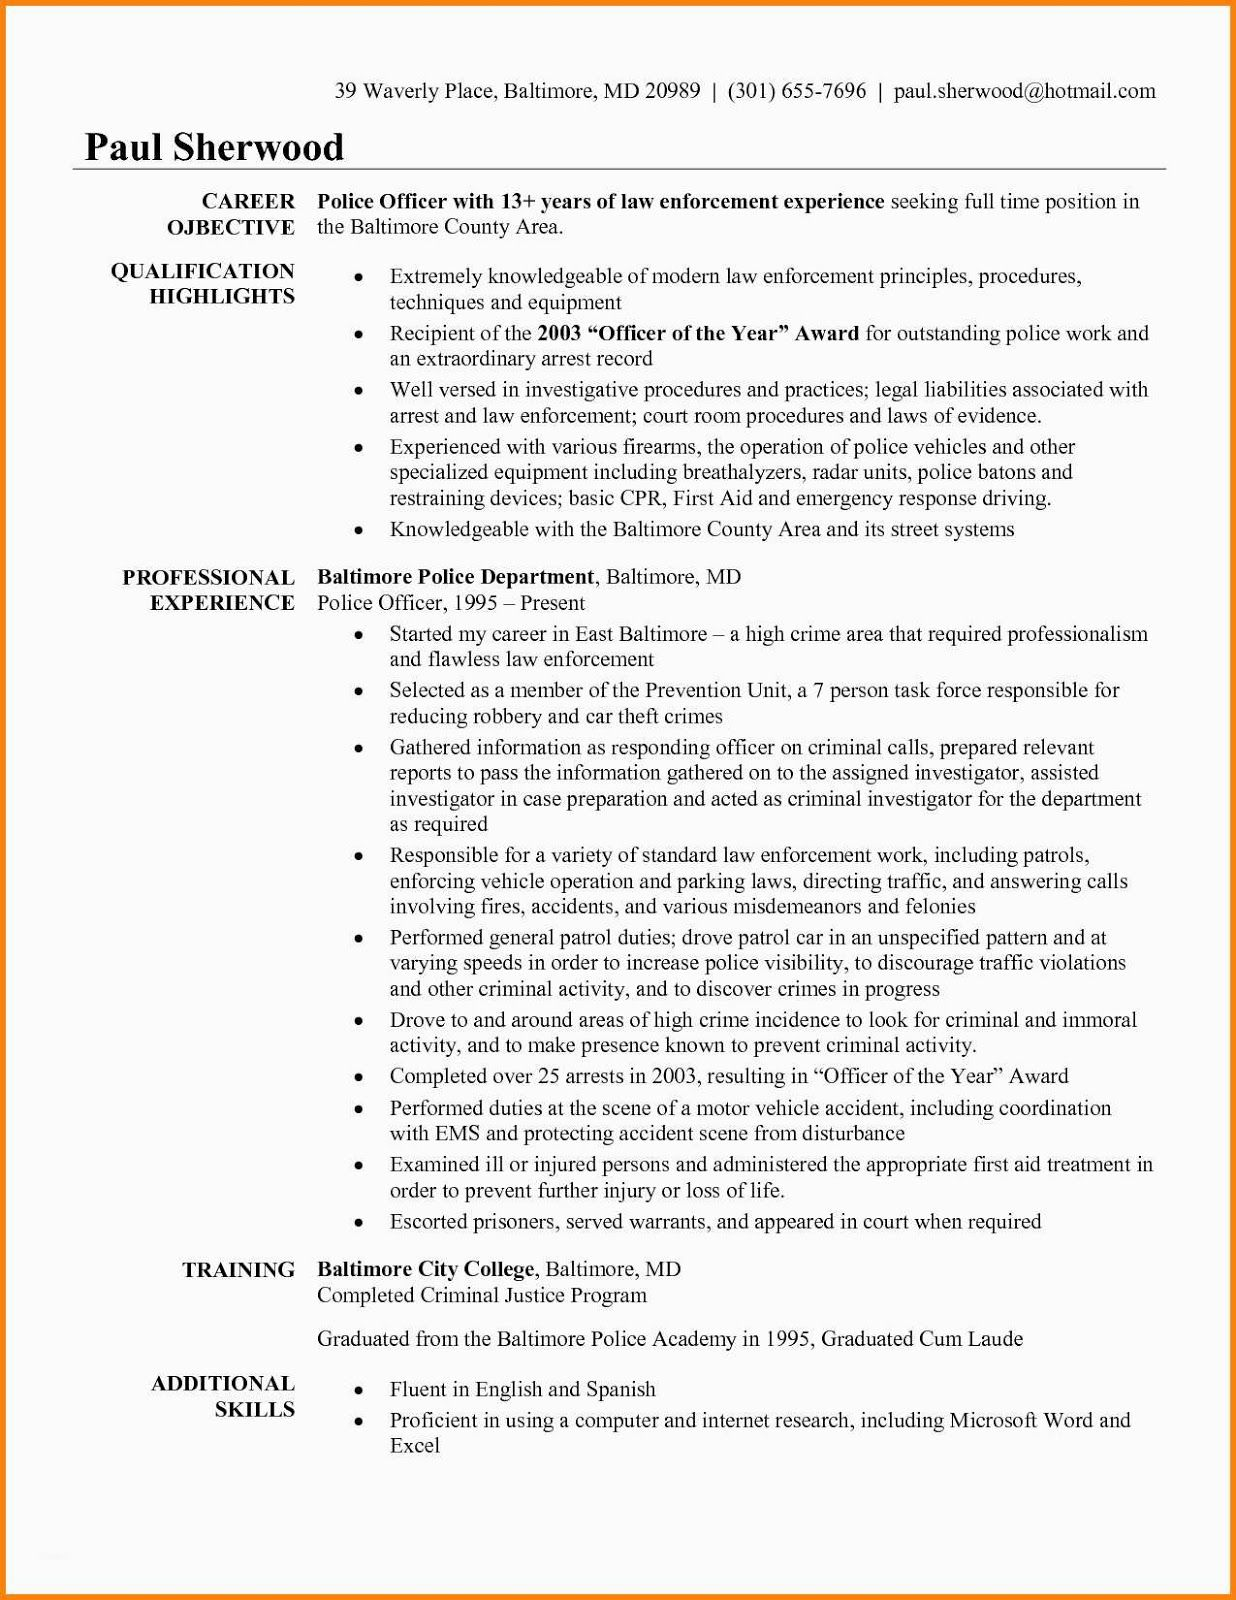 police officer resume templates free retired off objective examples statement name header Resume Police Officer Resume Objective Statement